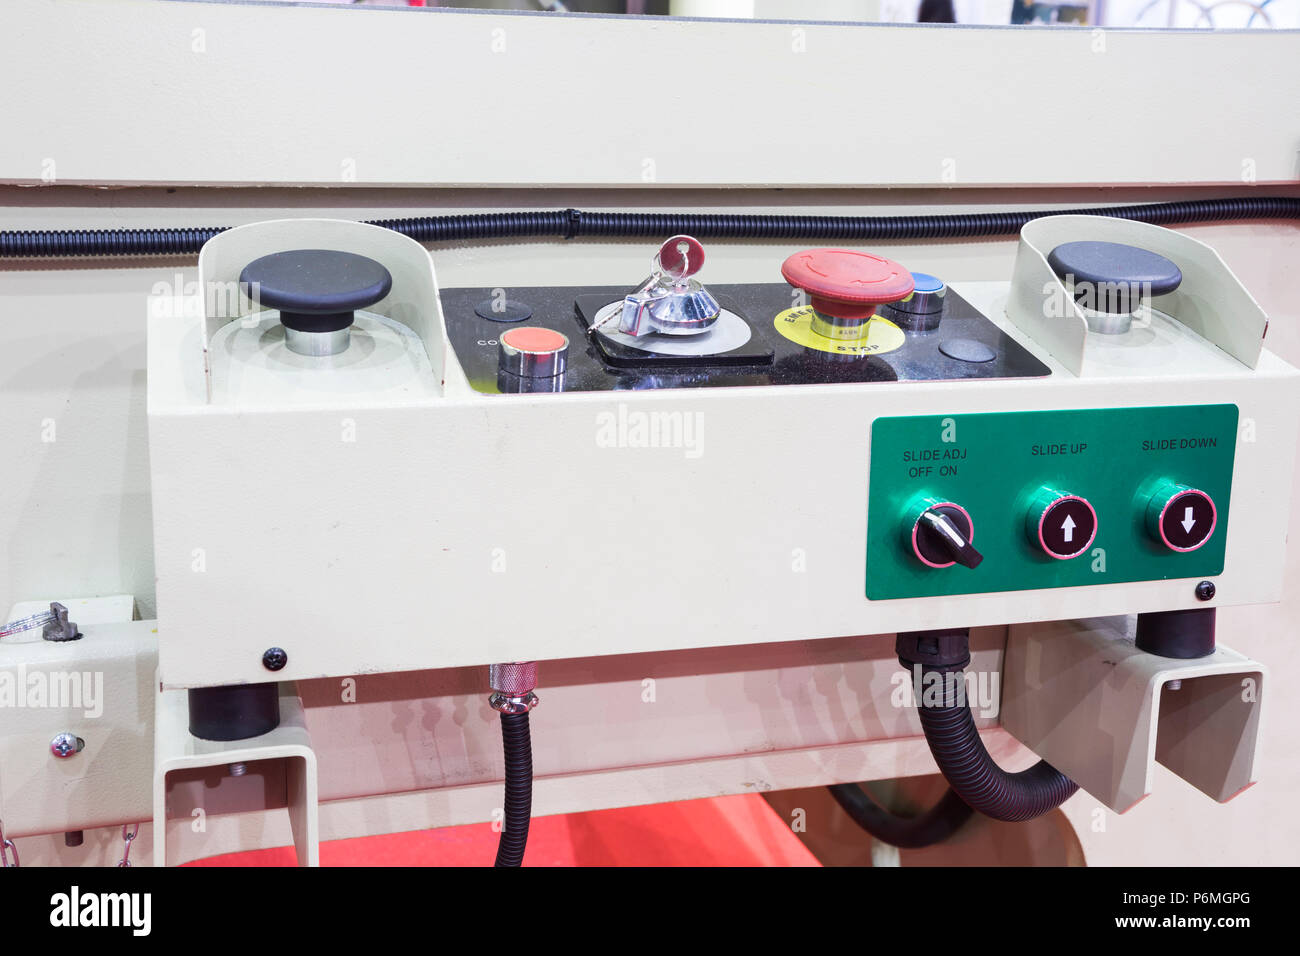 push switch and control pannel of forging machine - Stock Image